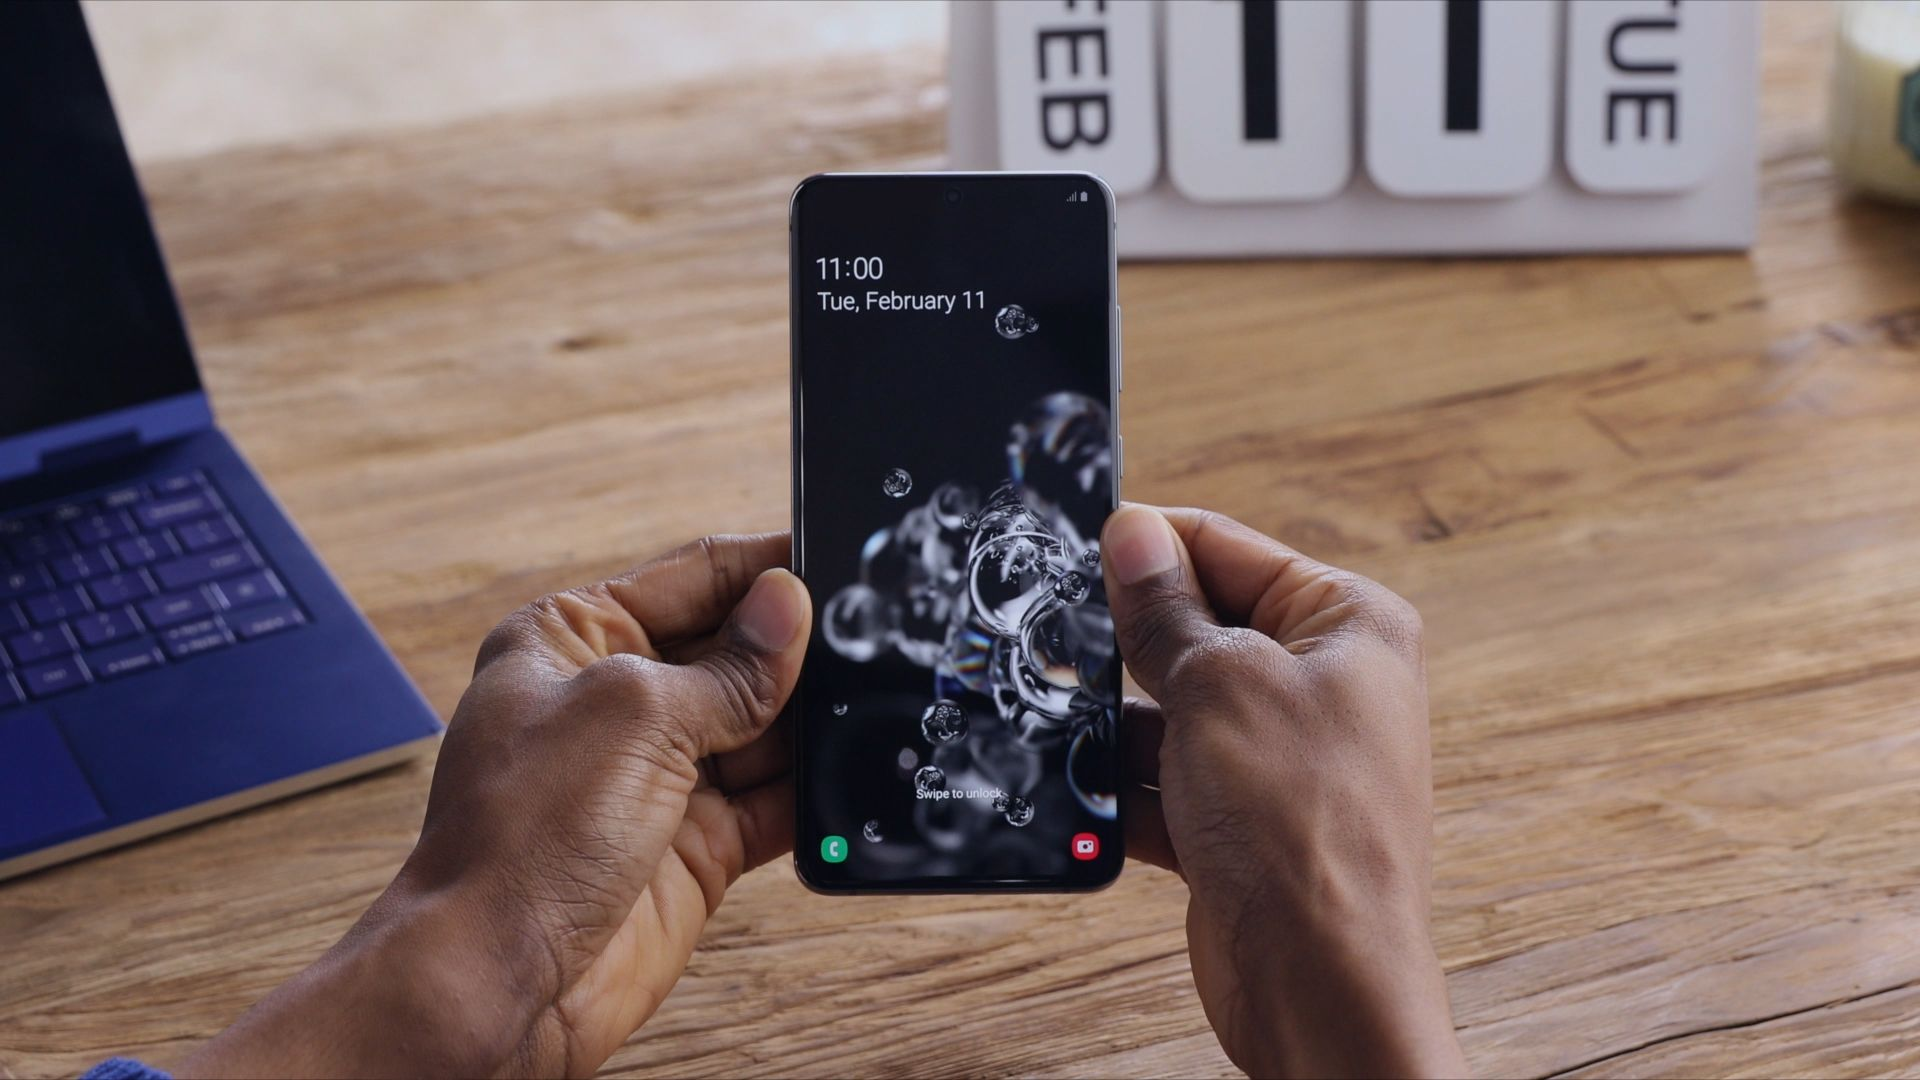 Samsung Galaxy Unpacked 2020: The Highly Anticipated Galaxy S20, Galaxy Z Flip and Much More